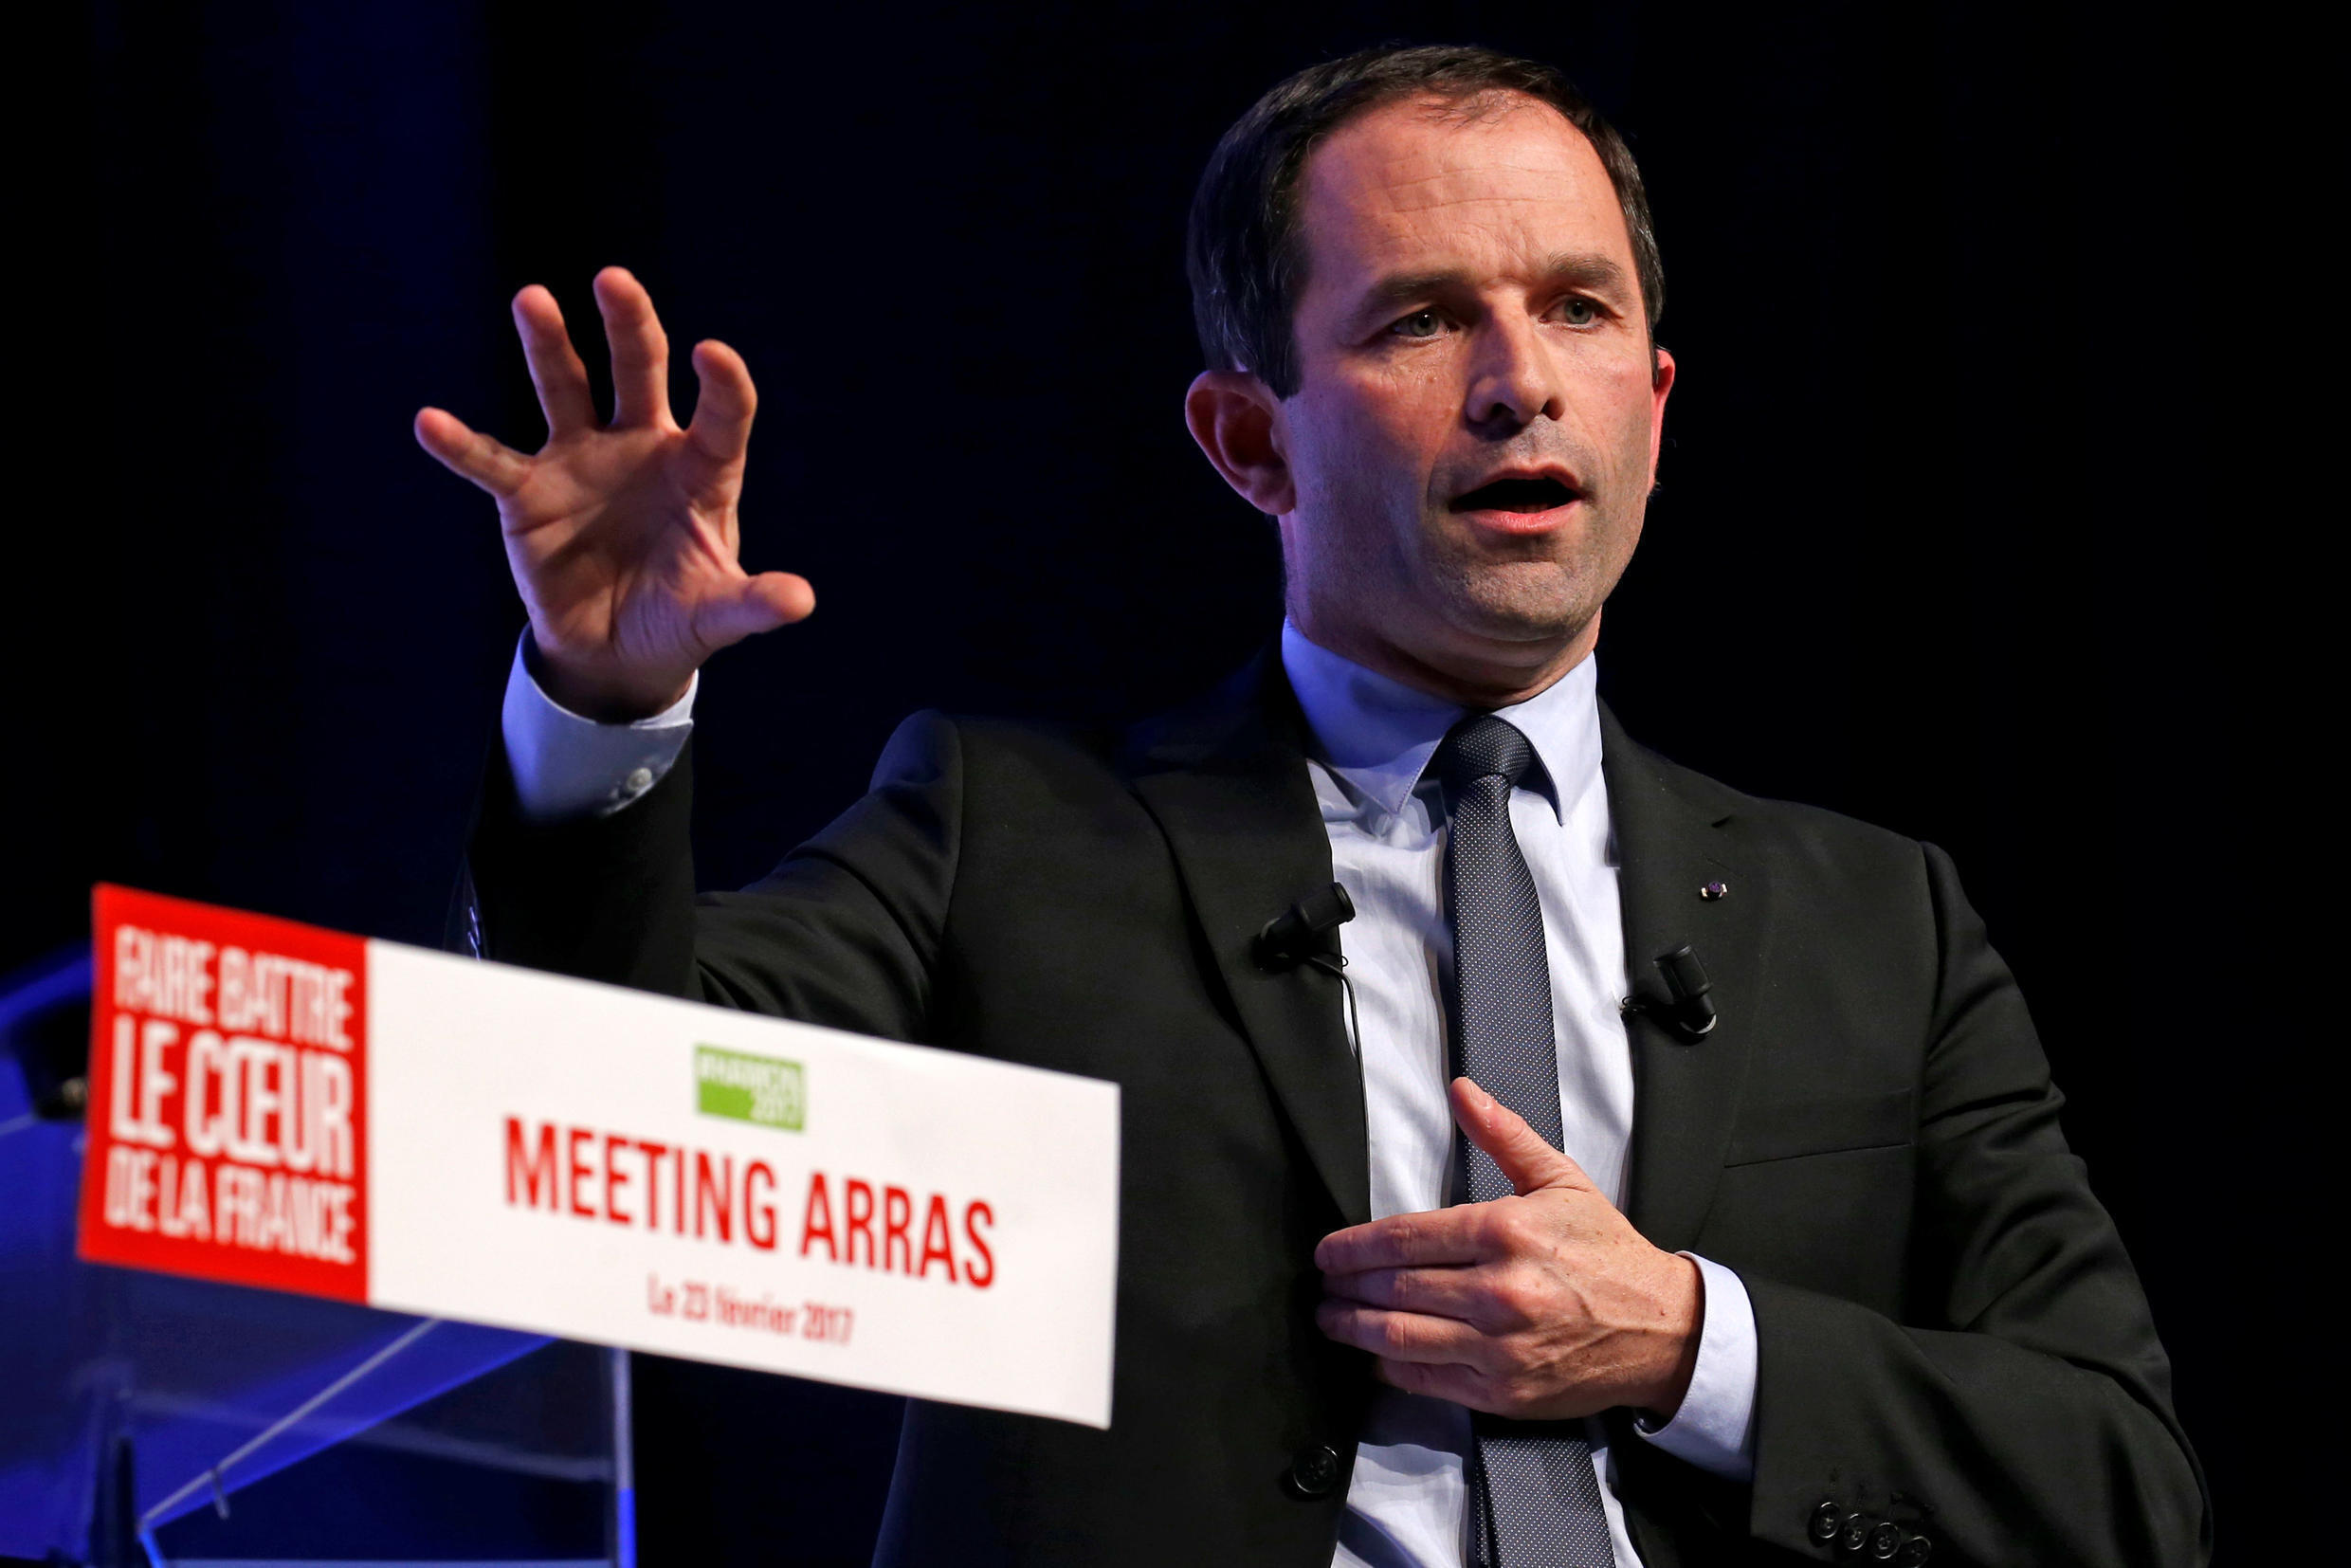 Benoit Hamon, French Socialist party 2017 presidential candidate, attends a political rally in Arras, France February 23, 2017.